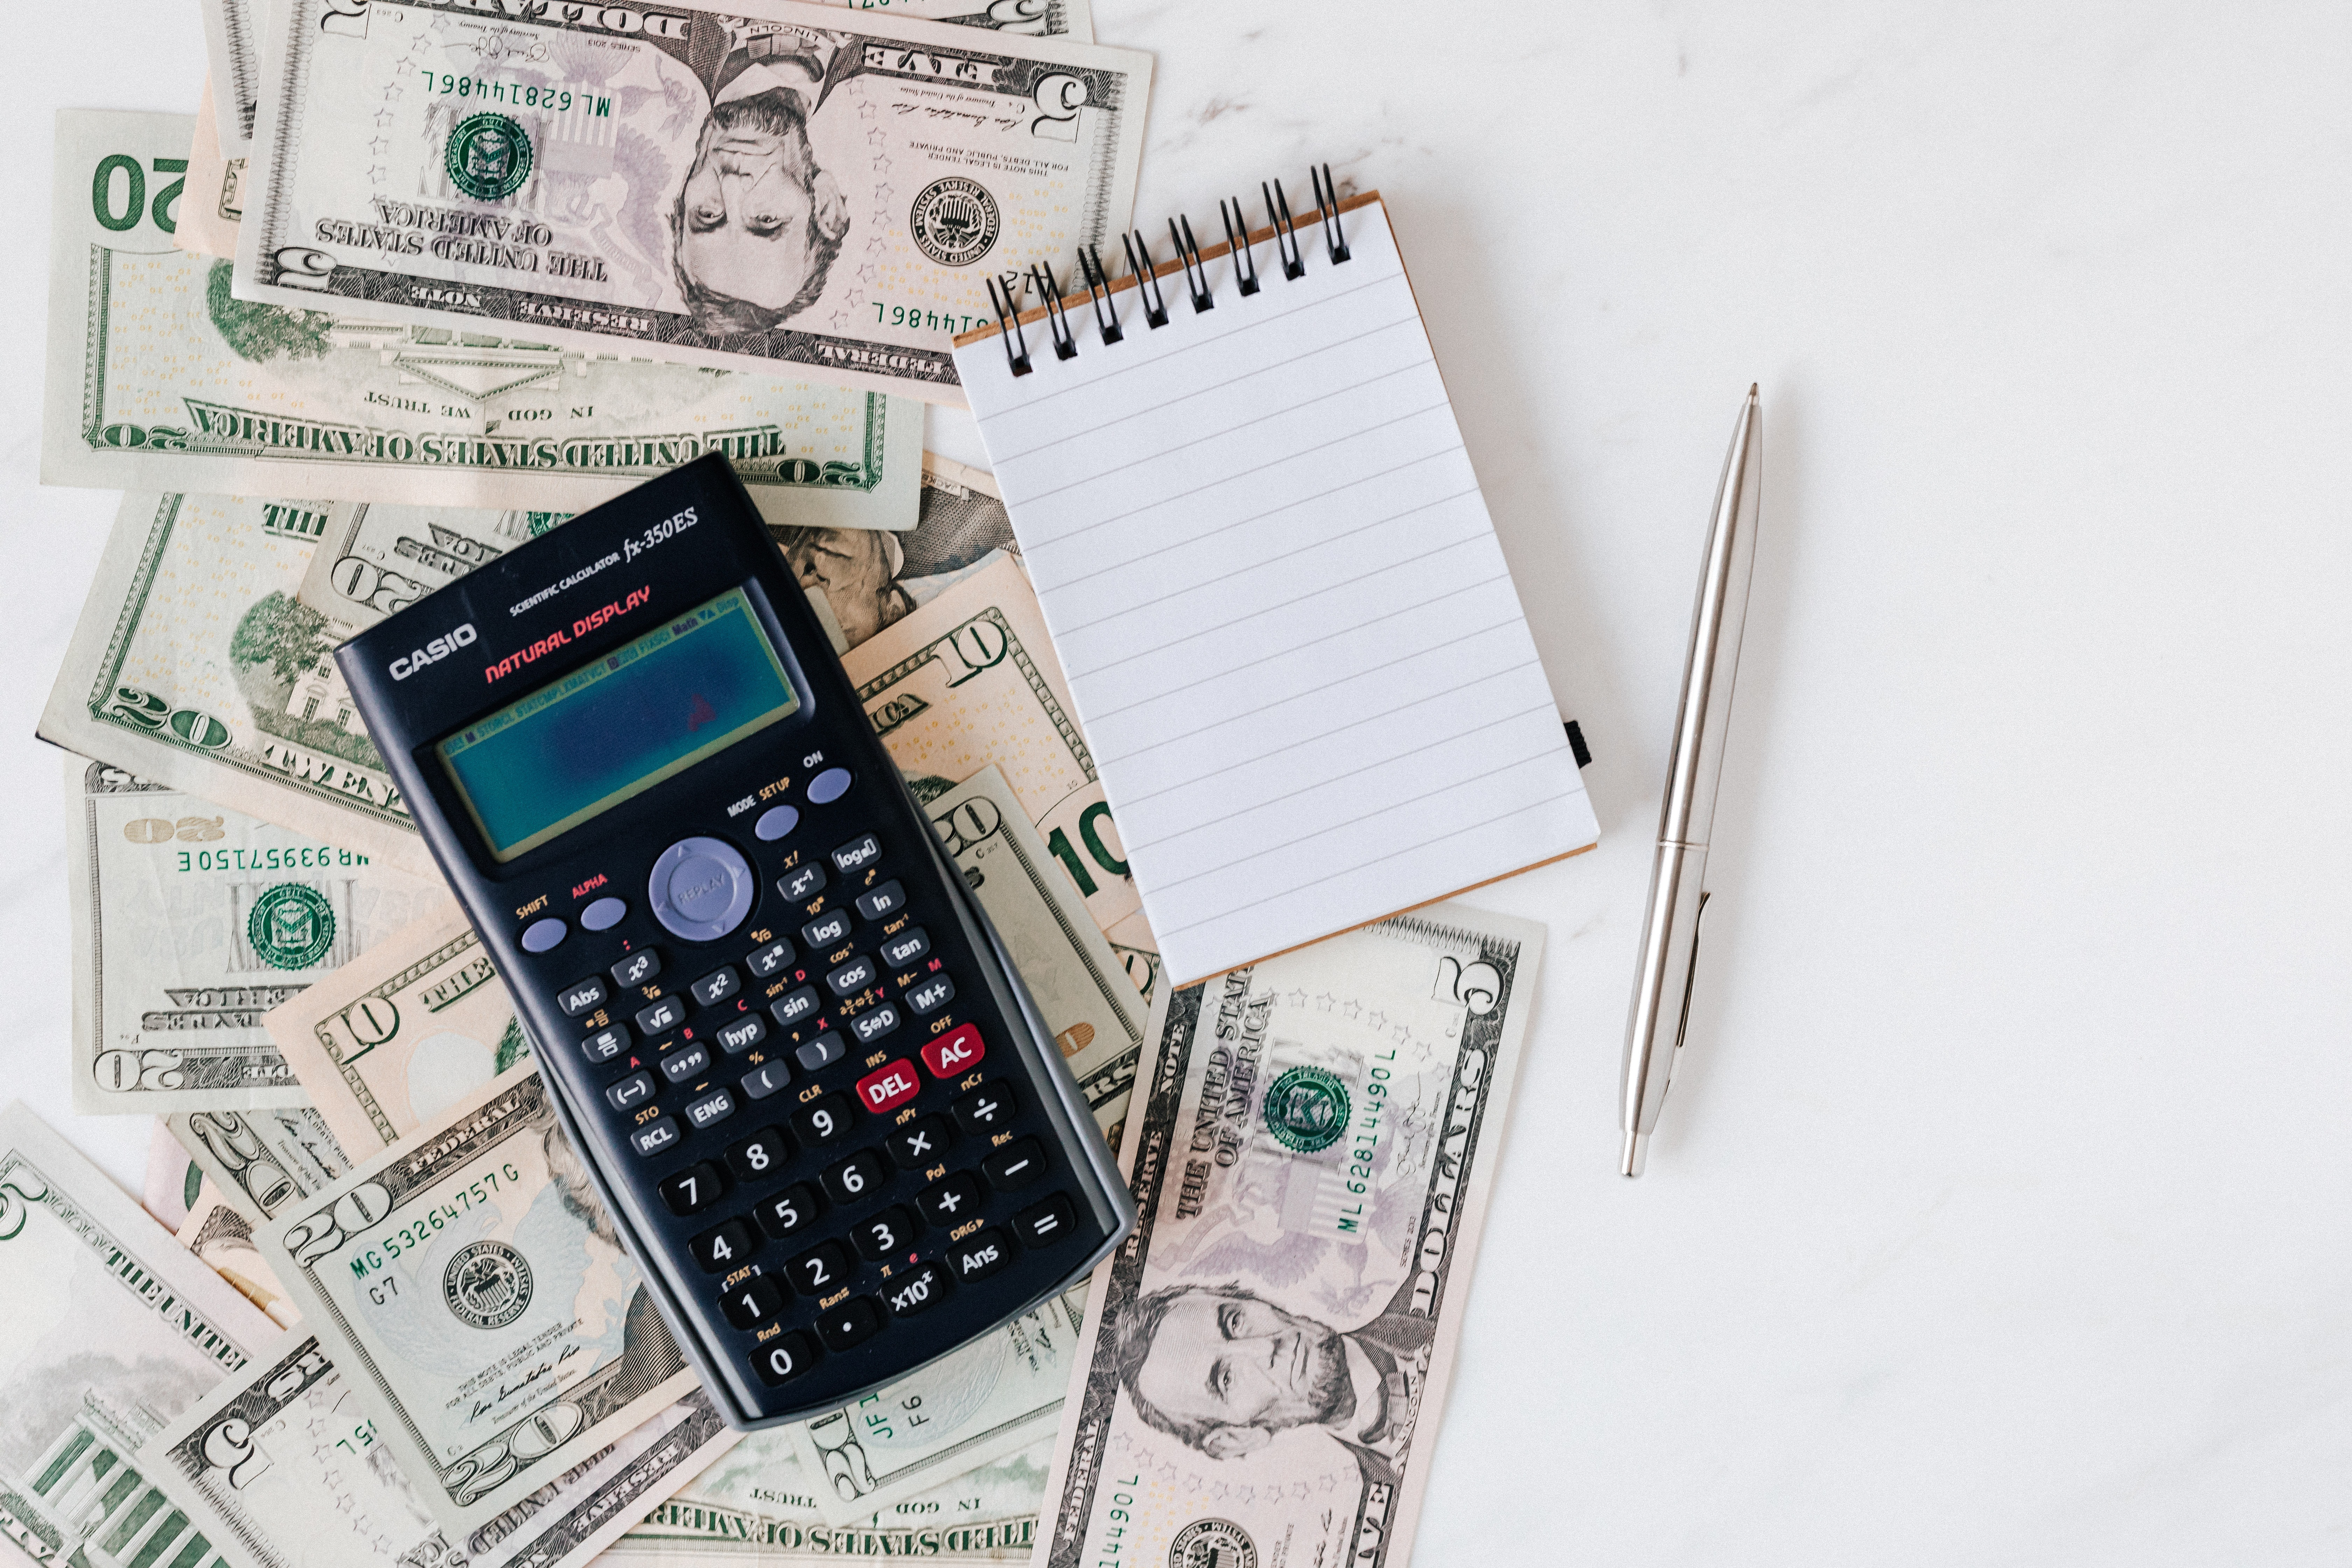 2021 Payroll: Contribution Limits, W-4s, & IRS Withholding